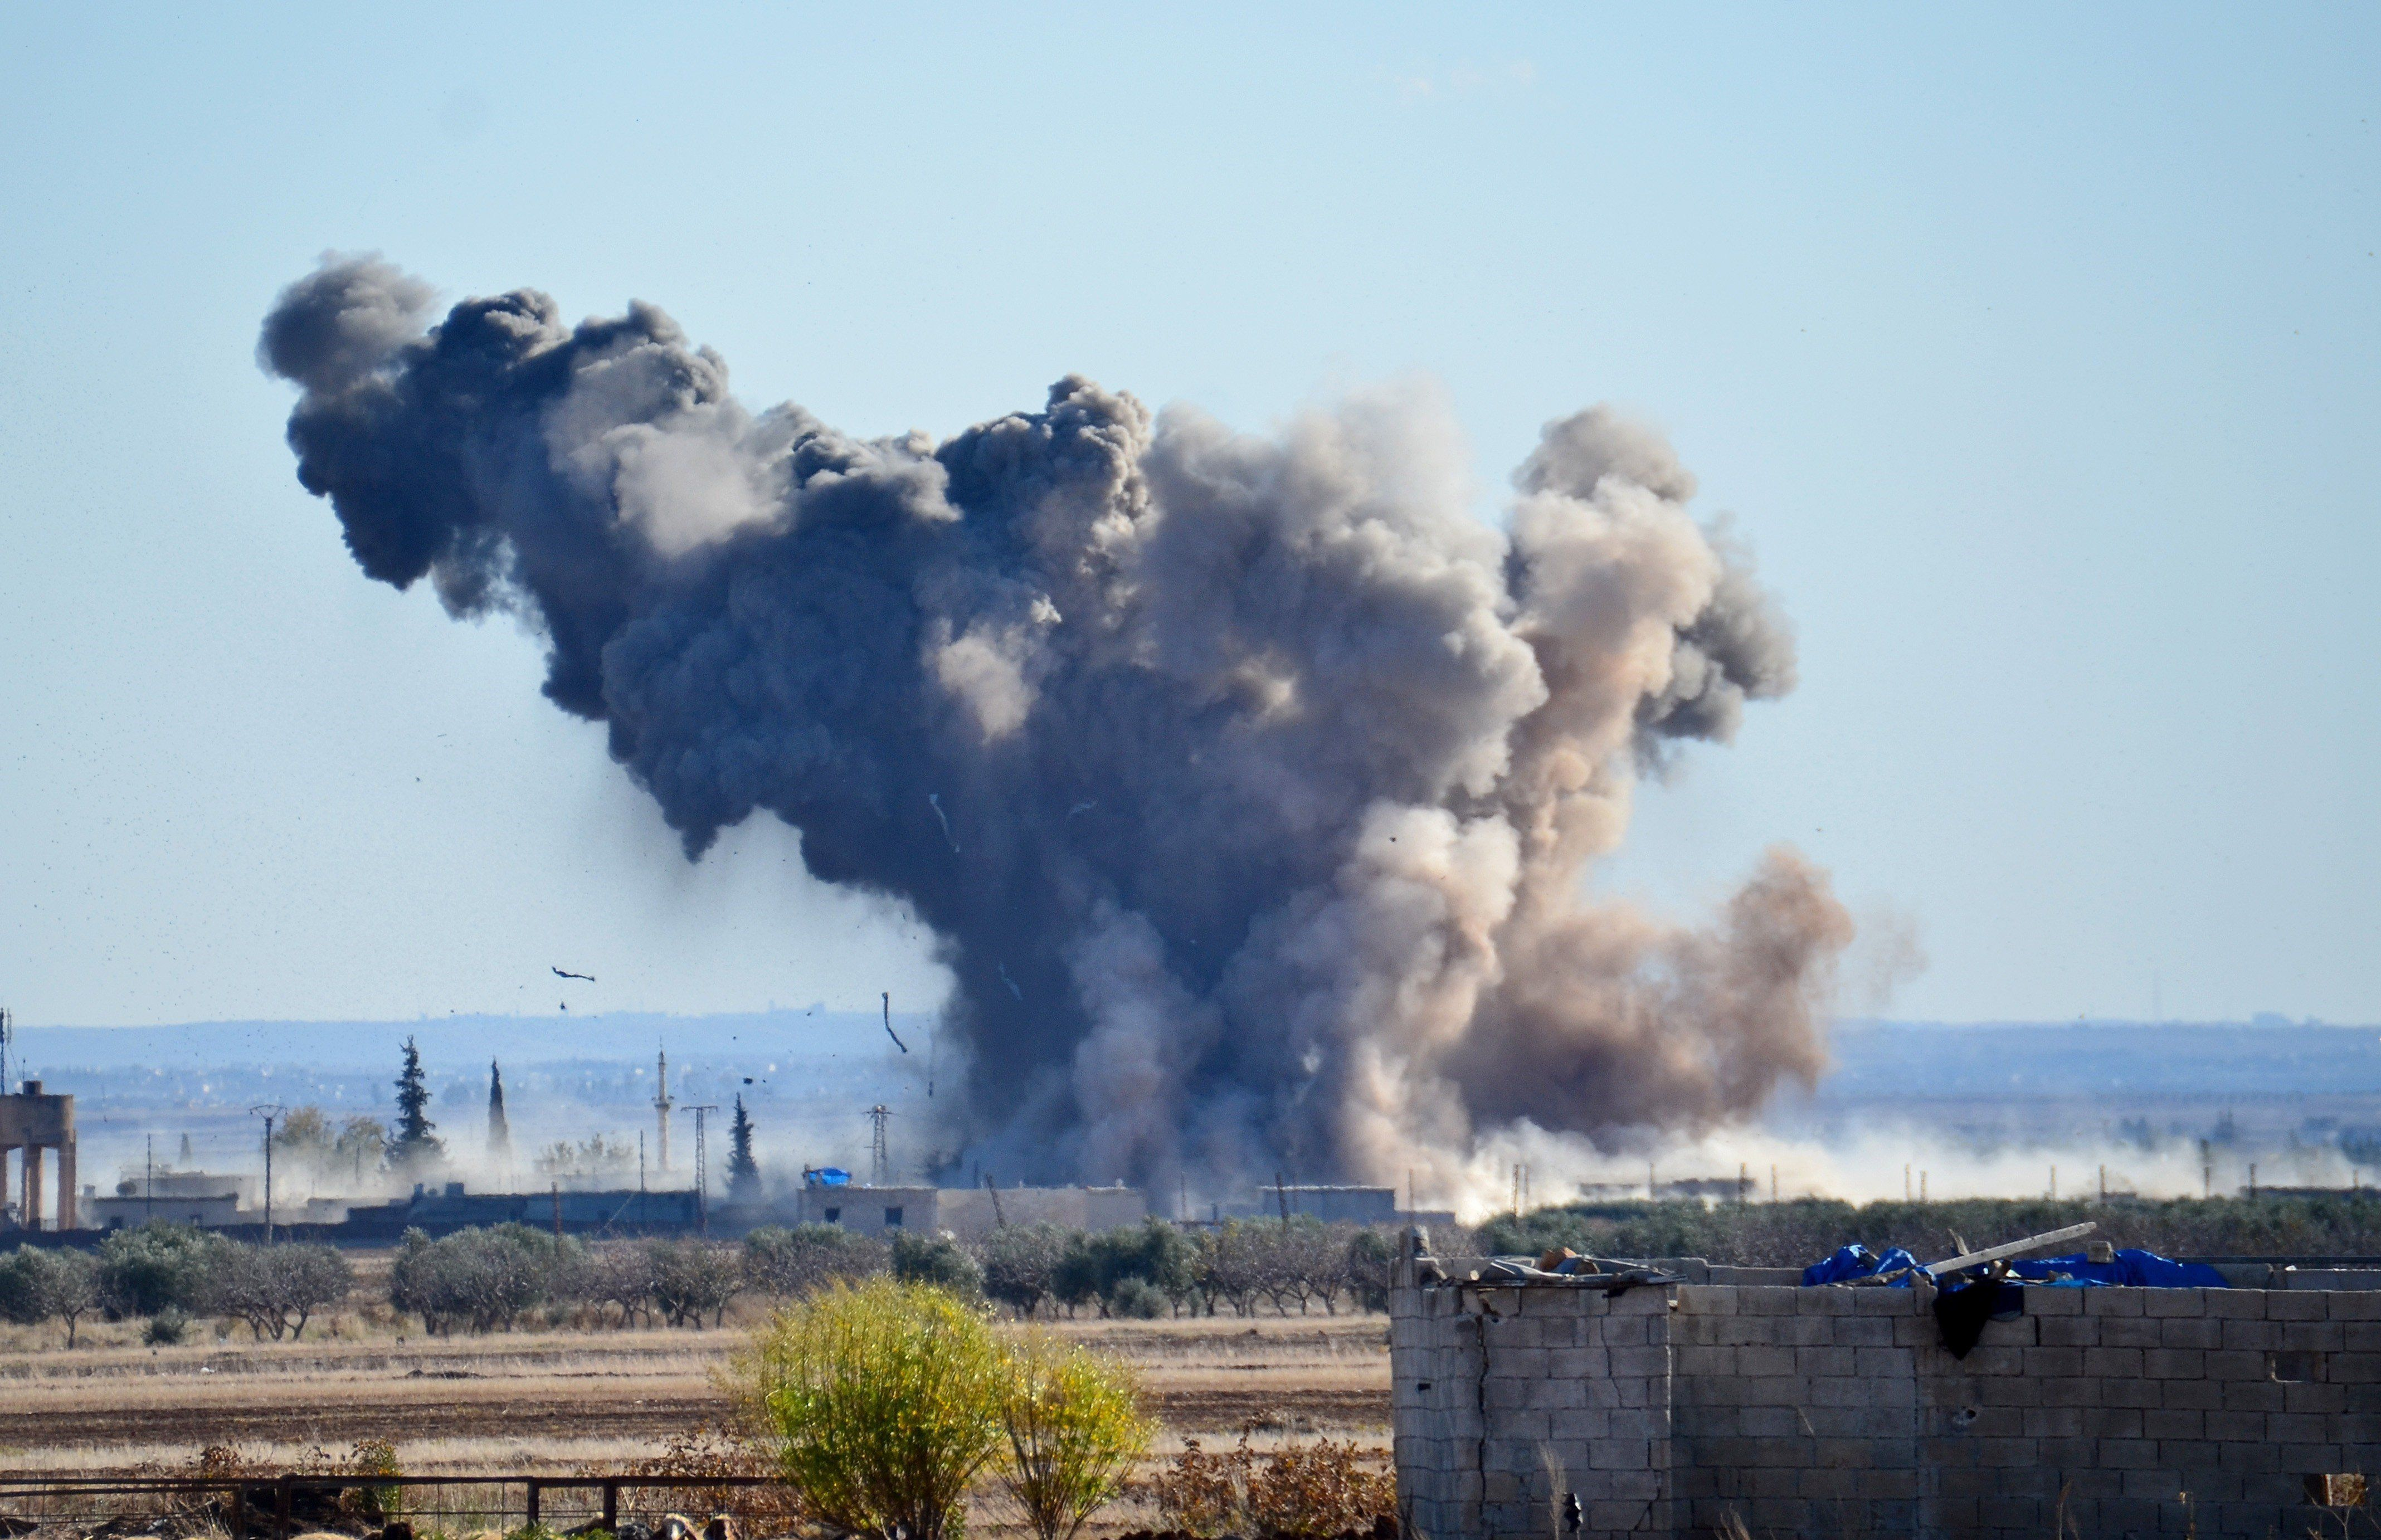 ALEPPO, SYRIA - DECEMBER 03: Smoke rises after the US-led coalition airstrikes' hits DAESH positions at Brekida village in Aleppo, Syria on December 03, 2015. (Photo by Huseyin Nasir/Anadolu Agency/Getty Images)